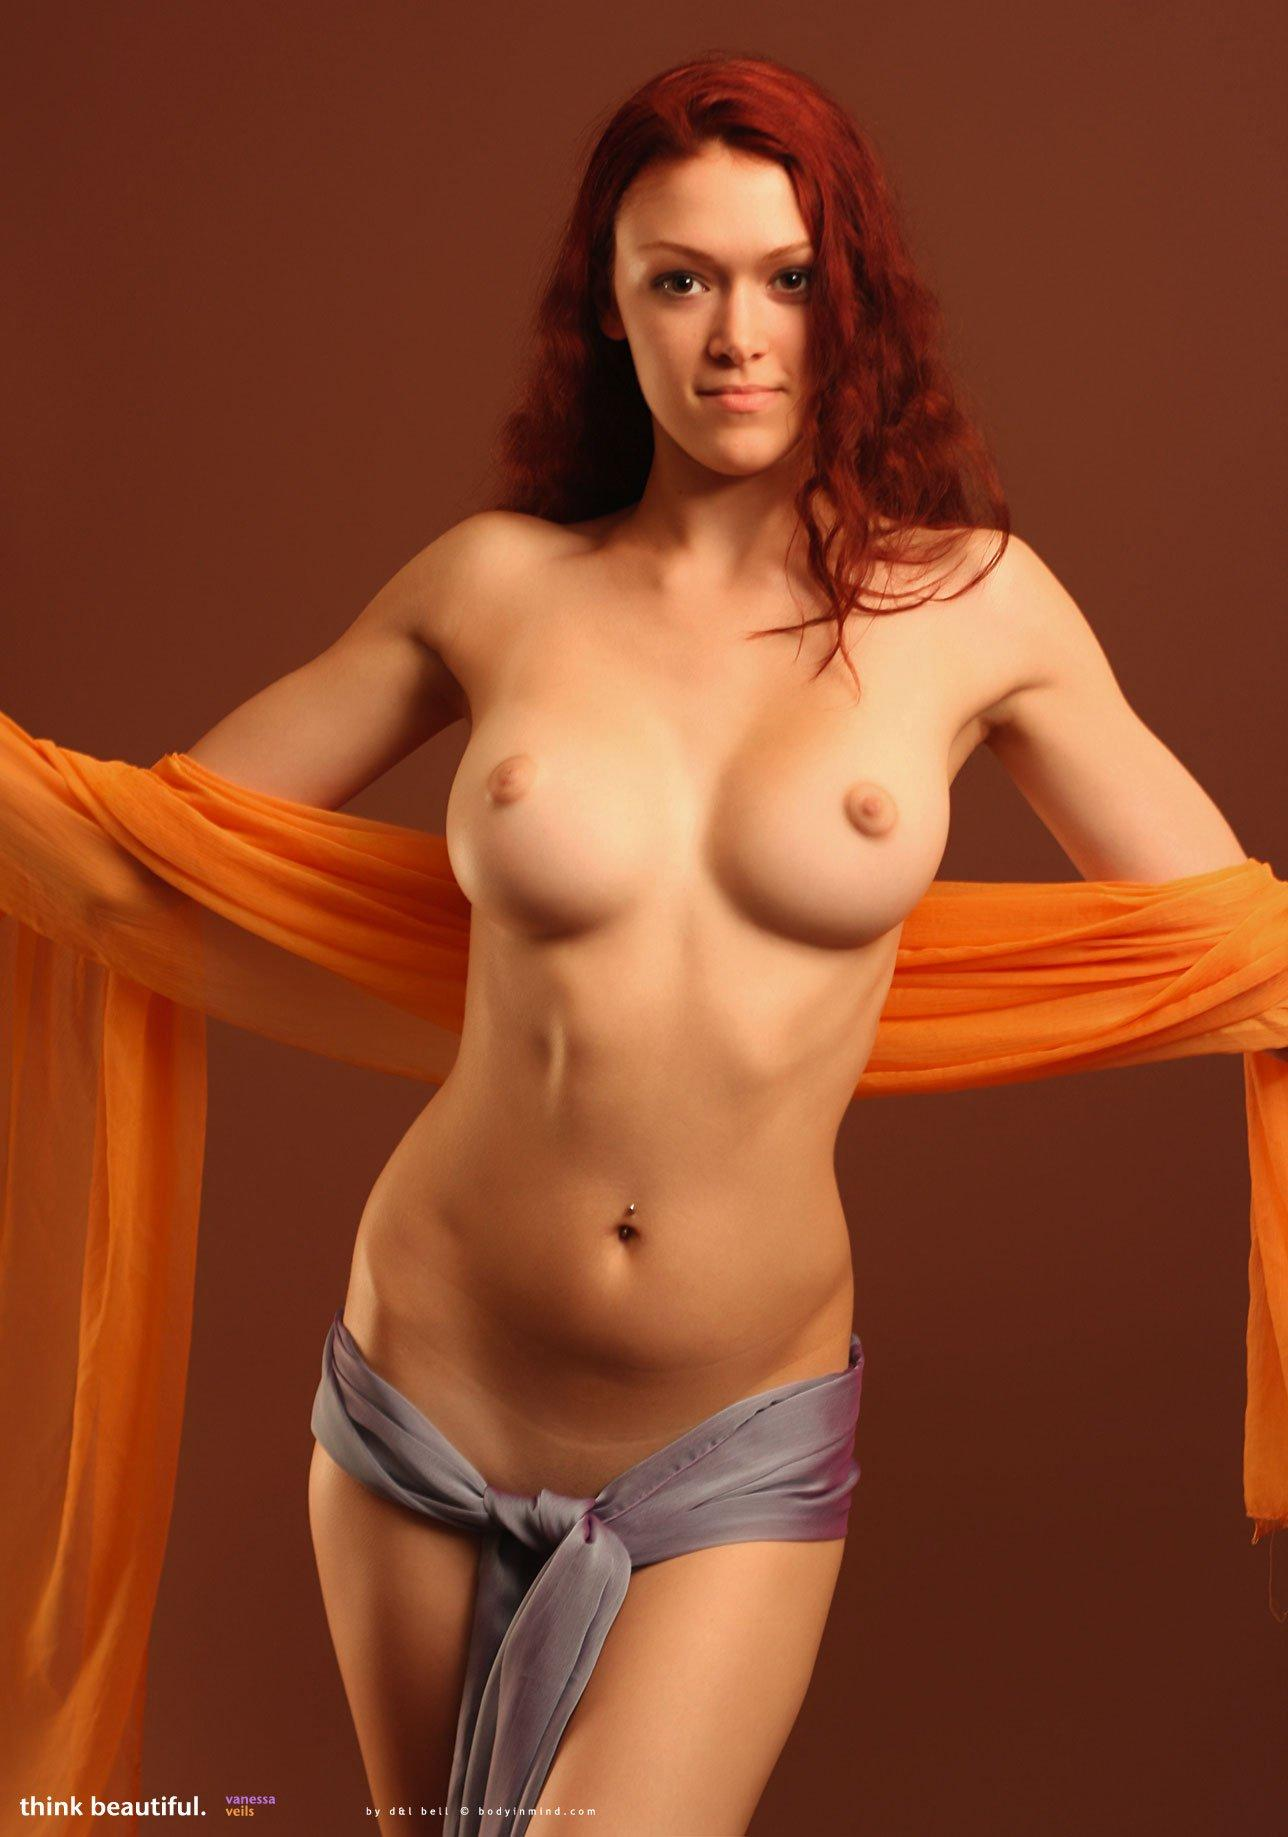 Beautiful redhead dancing nude remarkable